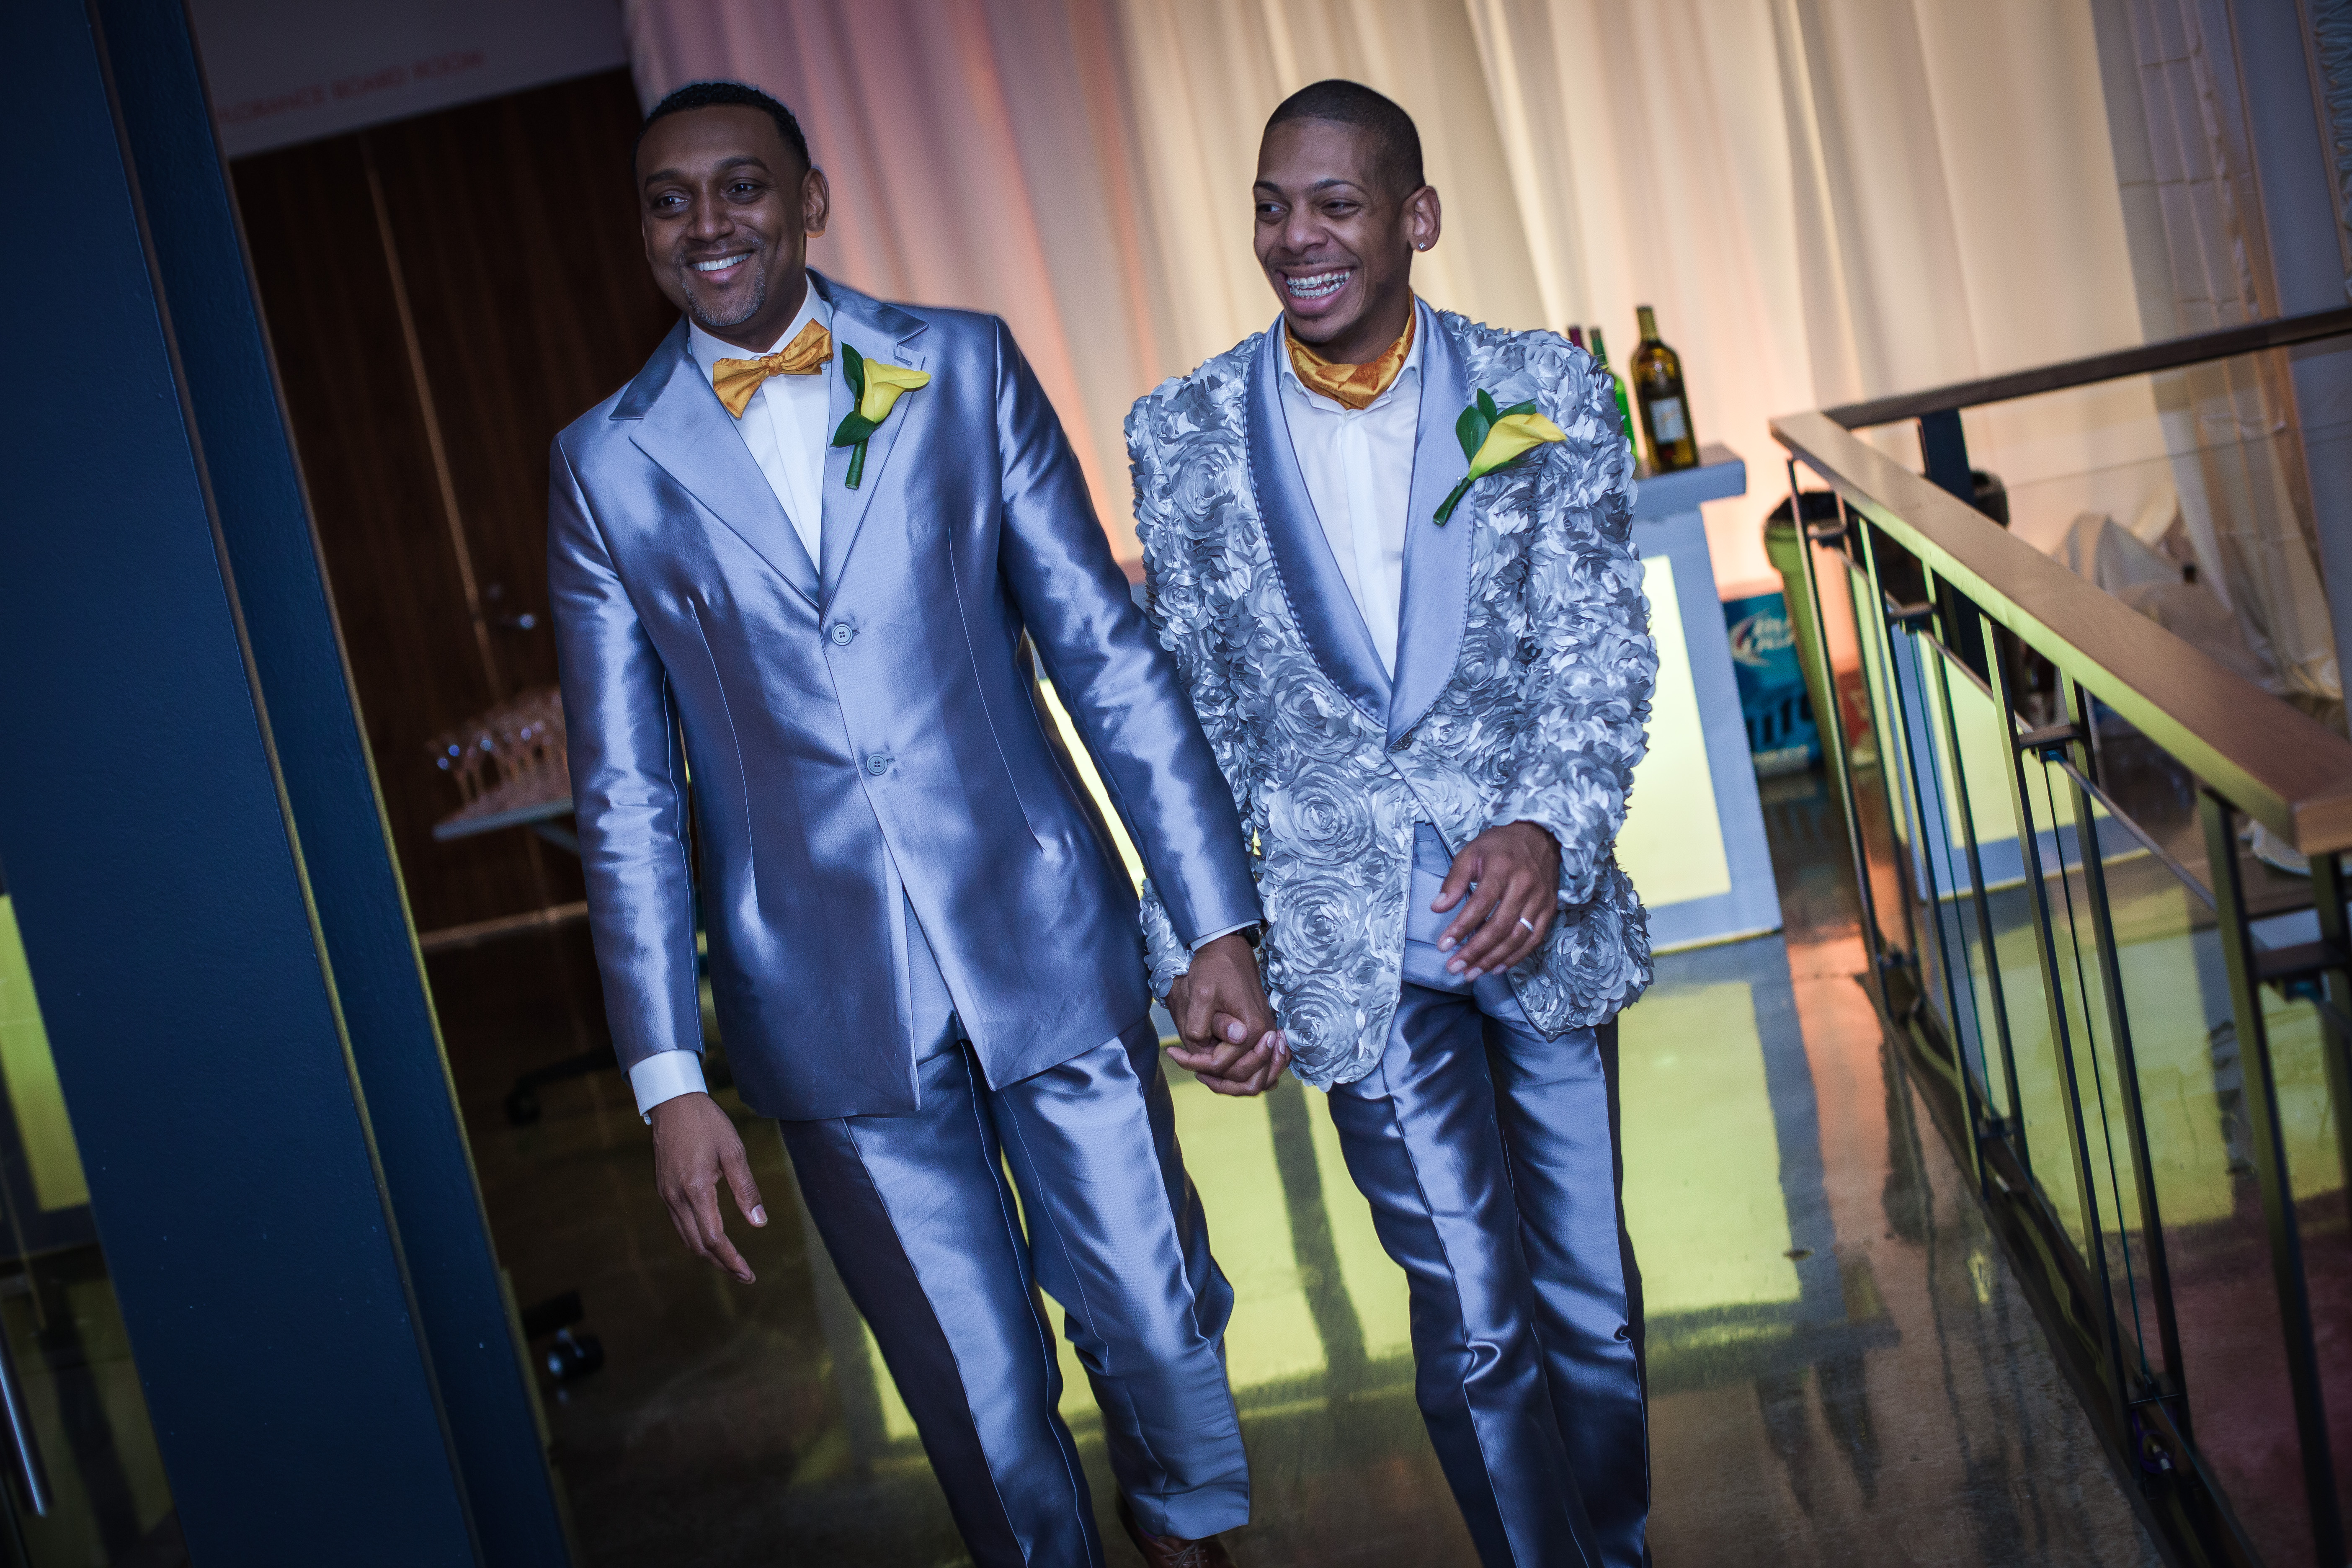 DC Wedding Planner  |  Real Weddings by Perfect Planning Events  |  Anthony and David